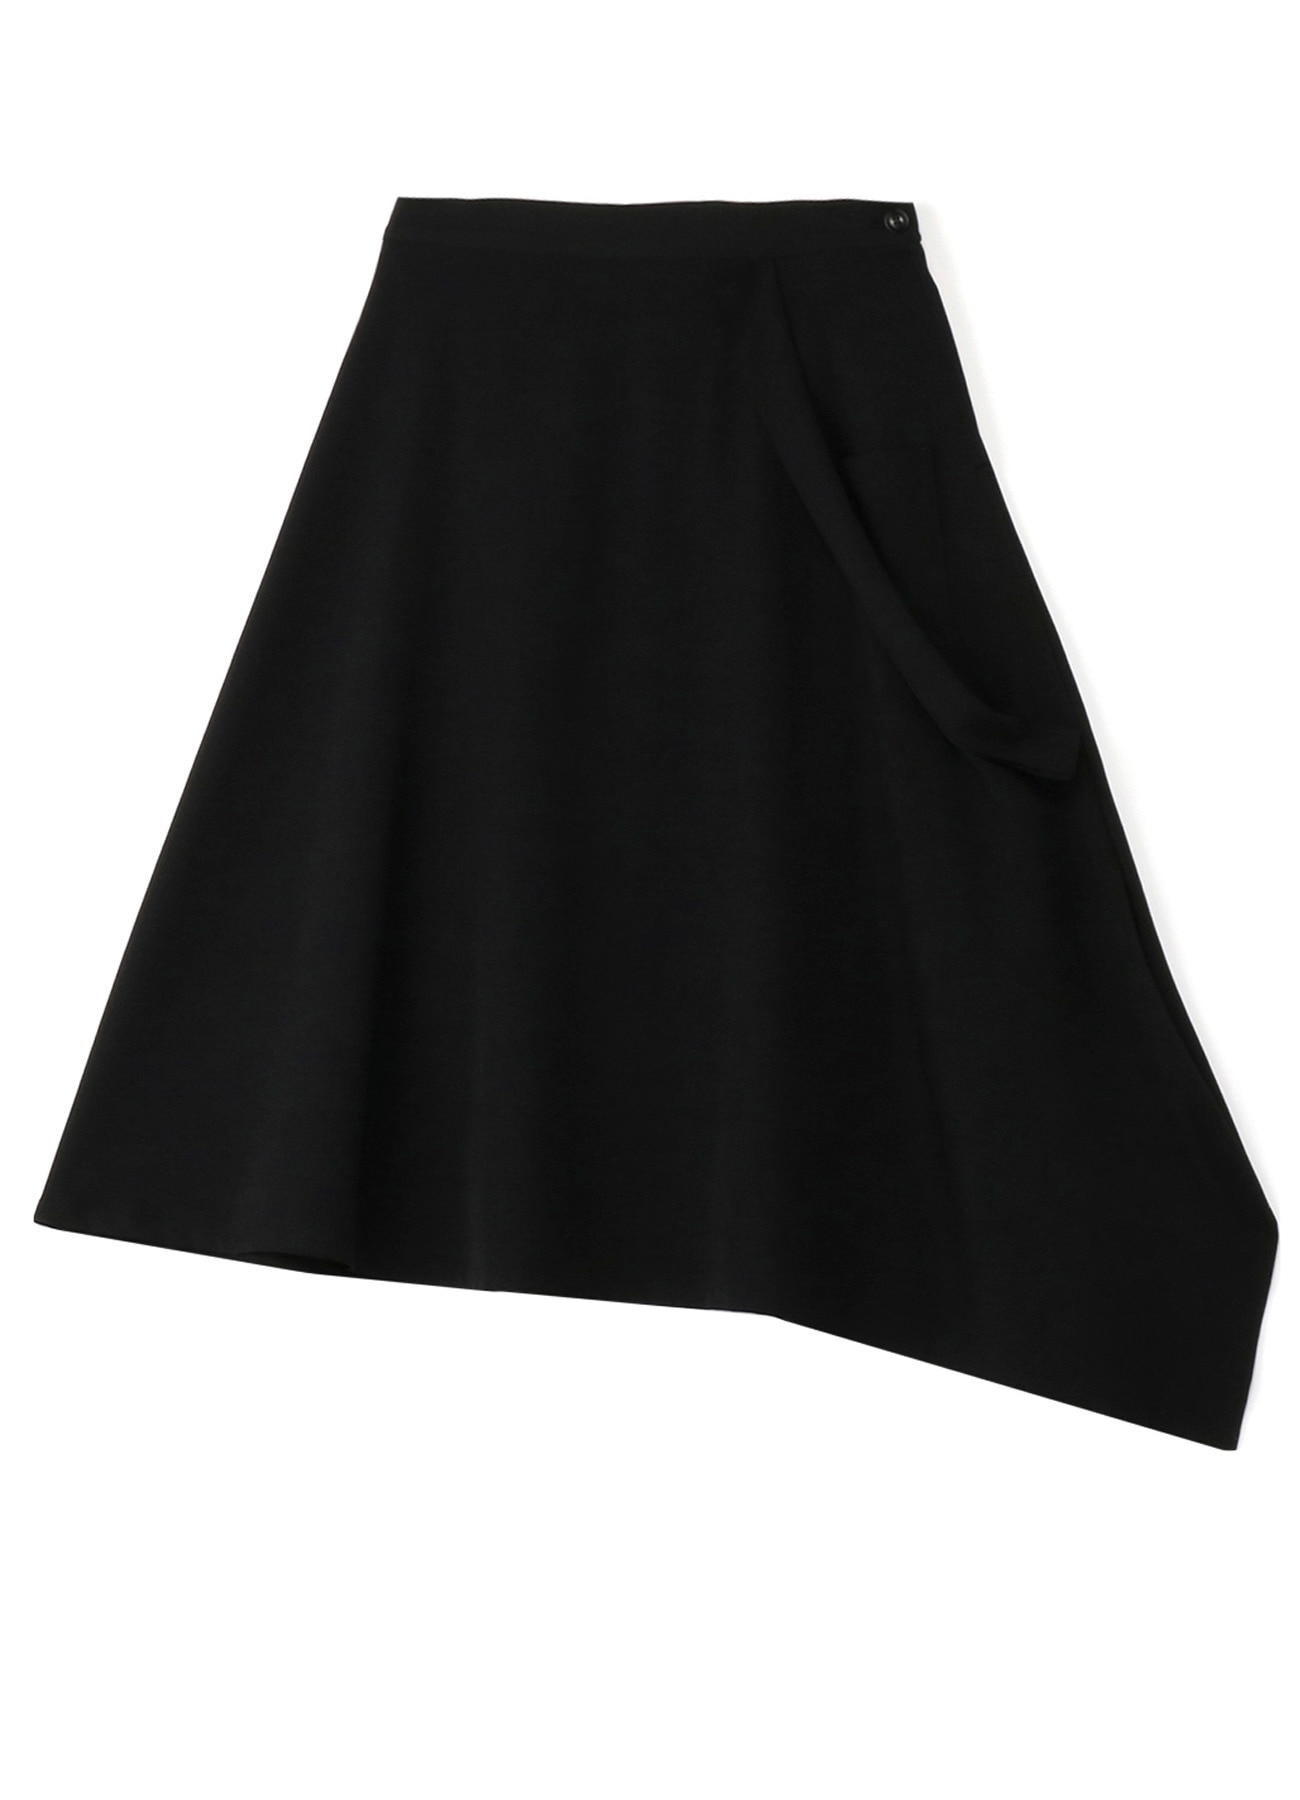 Squid Gaba diagonal flare skirt